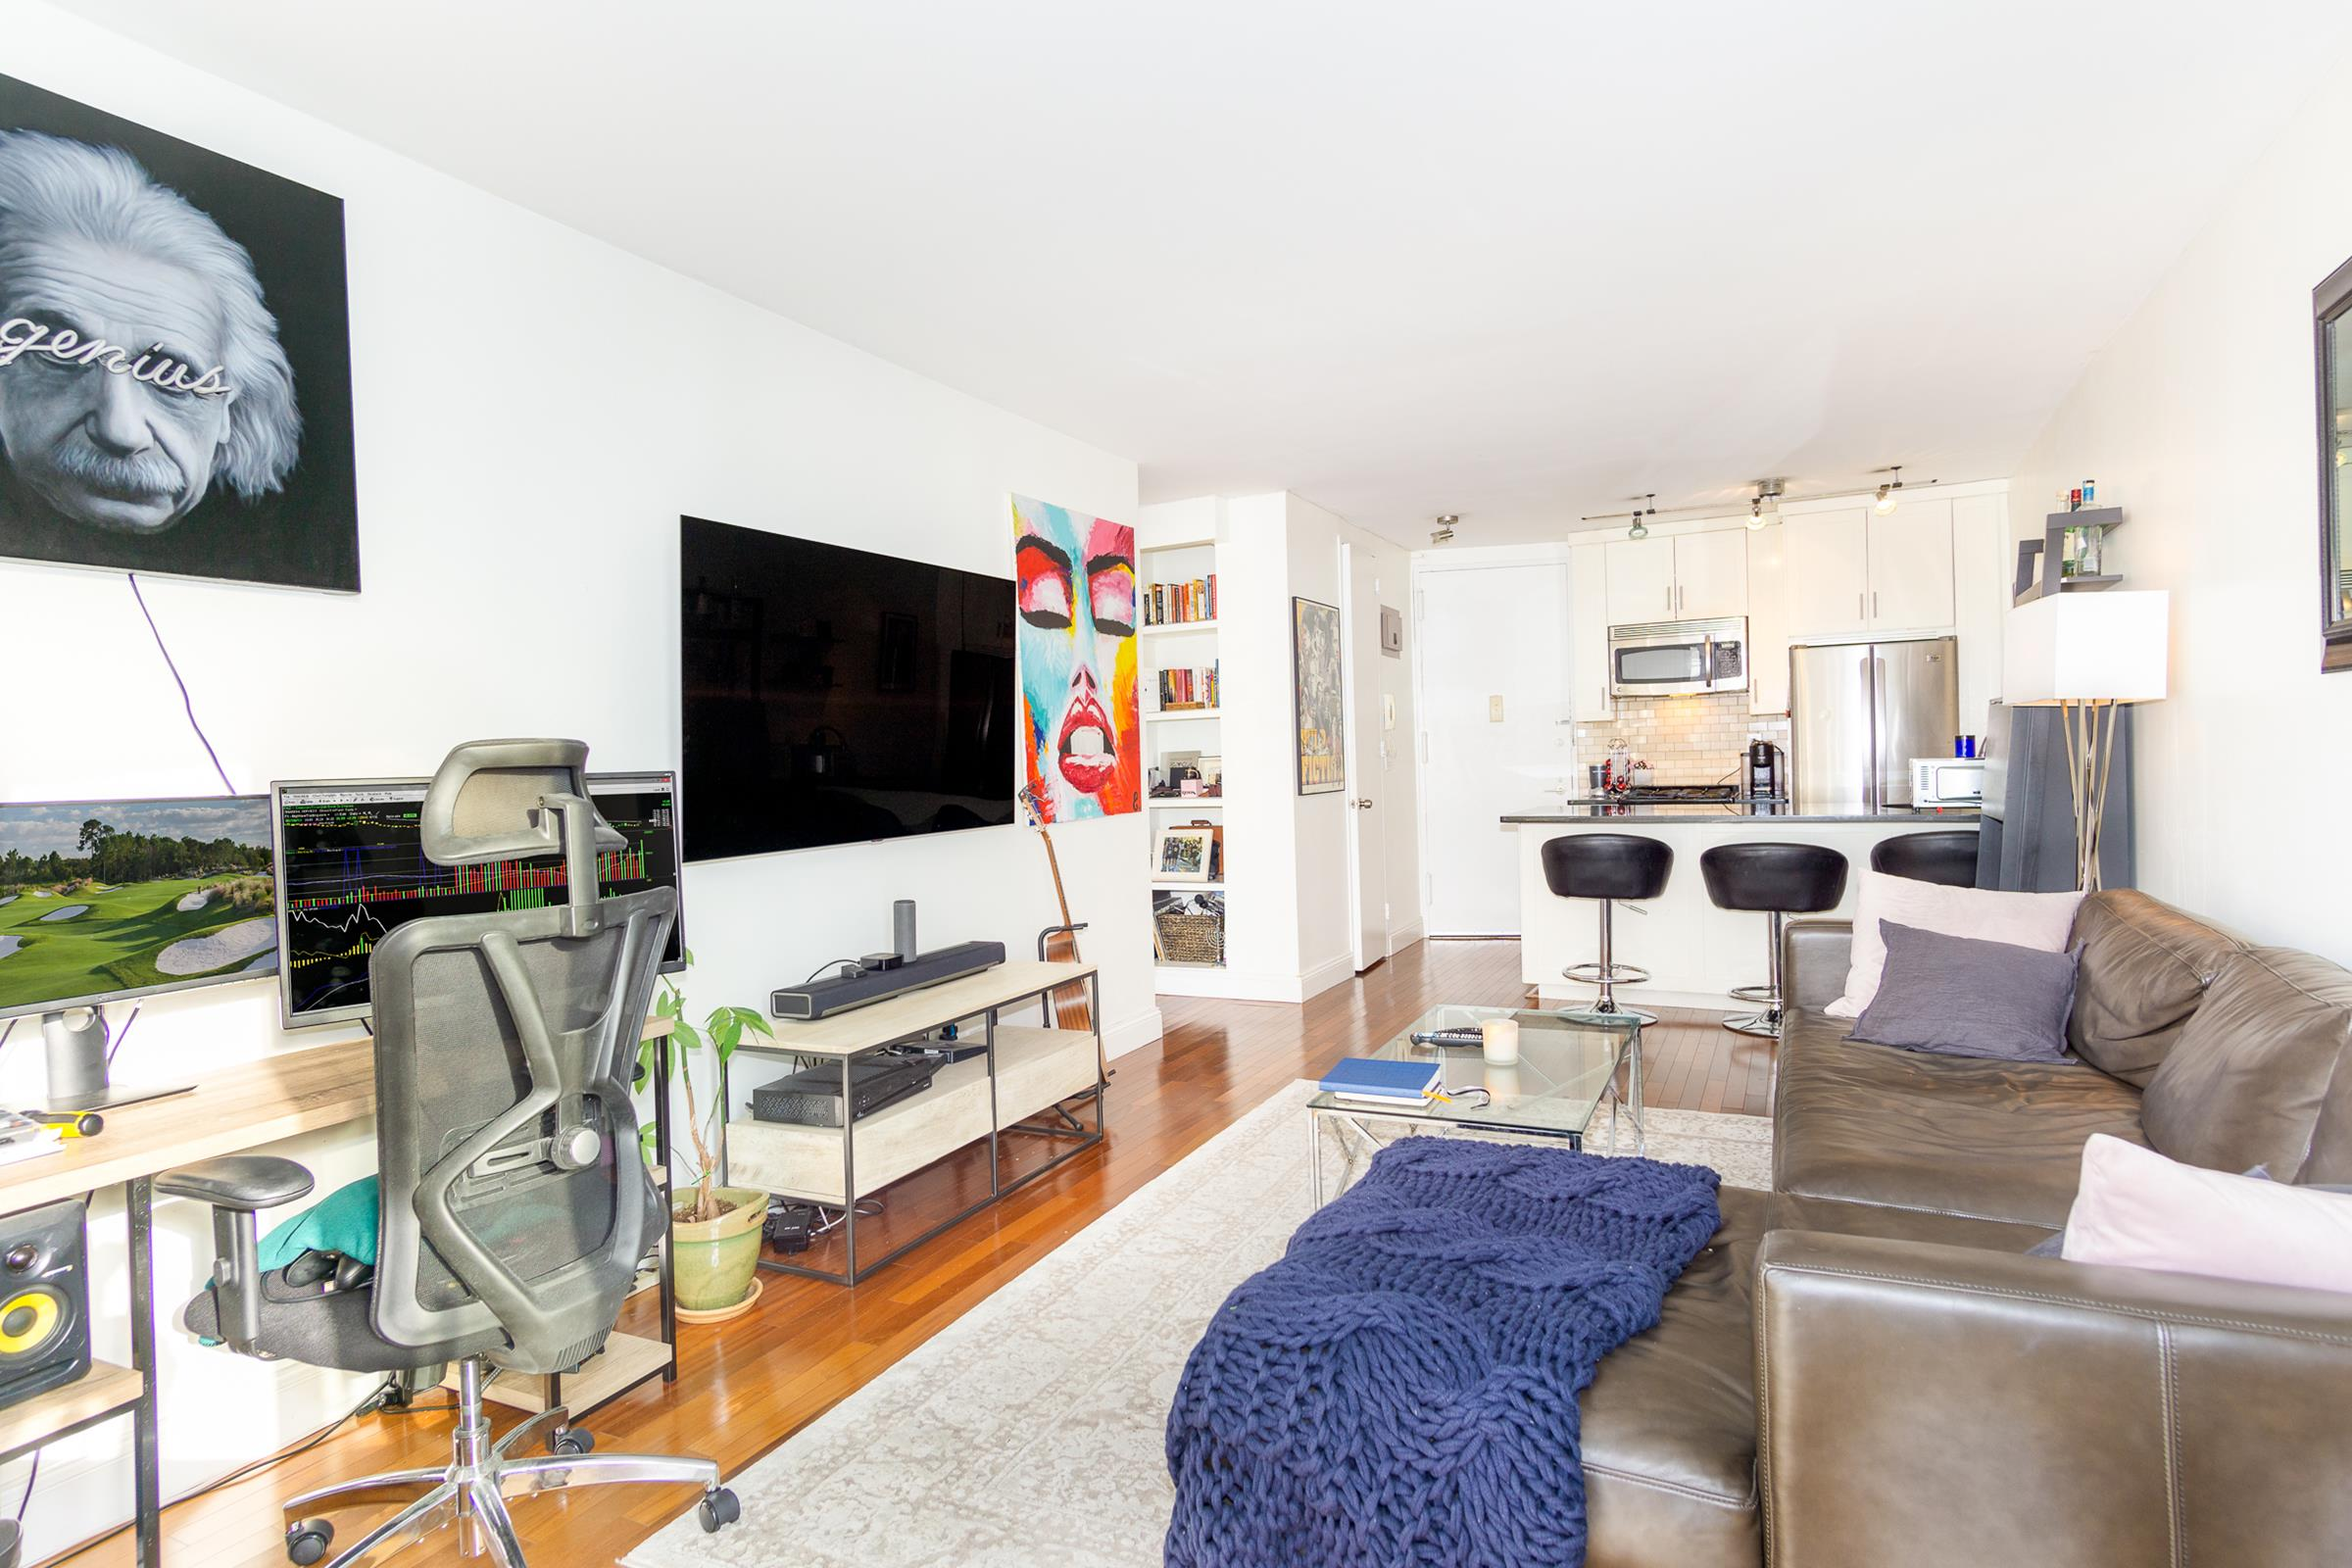 With striking views of the iconic Flatiron Building, the west side of Madison Square Park, and a spacious private balcony, this beautiful and bright one-bedroom at the beloved Madison Green Condominium has it all!The H Line at Madison Green provides generous room proportions in both the living room and king-sized bedroom thatwillcomfortably fit most any living and dining combination. Further, the balcony area can easily accommodatea small love seat and dining set as you gaze out onto one of NYC's most iconic views from your own private outdoor space.The apartment features:*Large and very deep entry coat and storage closet*Fully and beautifully renovated open kitchen*Granite counters with tons of countertop space*Four burner gas range*Custom built cabinets*Full-sized side-by-side stainless fridge*Full-sized dishwasher*Ample storage in the kitchen bar top*Built-in breakfast bar*Beautiful hardwood floors*Centralized Heat and Air Conditioning*CitiQuiet windows*Large Private Balcony*King Sized bedroom*Massive bedroom closets*Bedroom views of the Flatiron BuildingThe building features:*24 Hour Doorman and Concierge*Fitness Center*Laundry on every floor*Dry Cleaning Services*Live in Superintendent*Sky Lounge and Entertainment Space*Community Garden and Patio Space*On-Site ATM Machine*On-Site Garage Parking attachedMadison Green is situated on one of the most desired and beloved corners of New York City,mere feet away from Madison Square Park, Eataly, Whole Foods, incredible bars, and restaurants, and is also only a short distance to Gramercy Park and Union Square. Furthermore, the R and W train is located less than 100 feet from the front entrance to Madison Green, and there is also very easy access to the M23 Crosstown bus to get you anywhere in the city quickly and easily.Sorry, no pets.Brokers CYOF